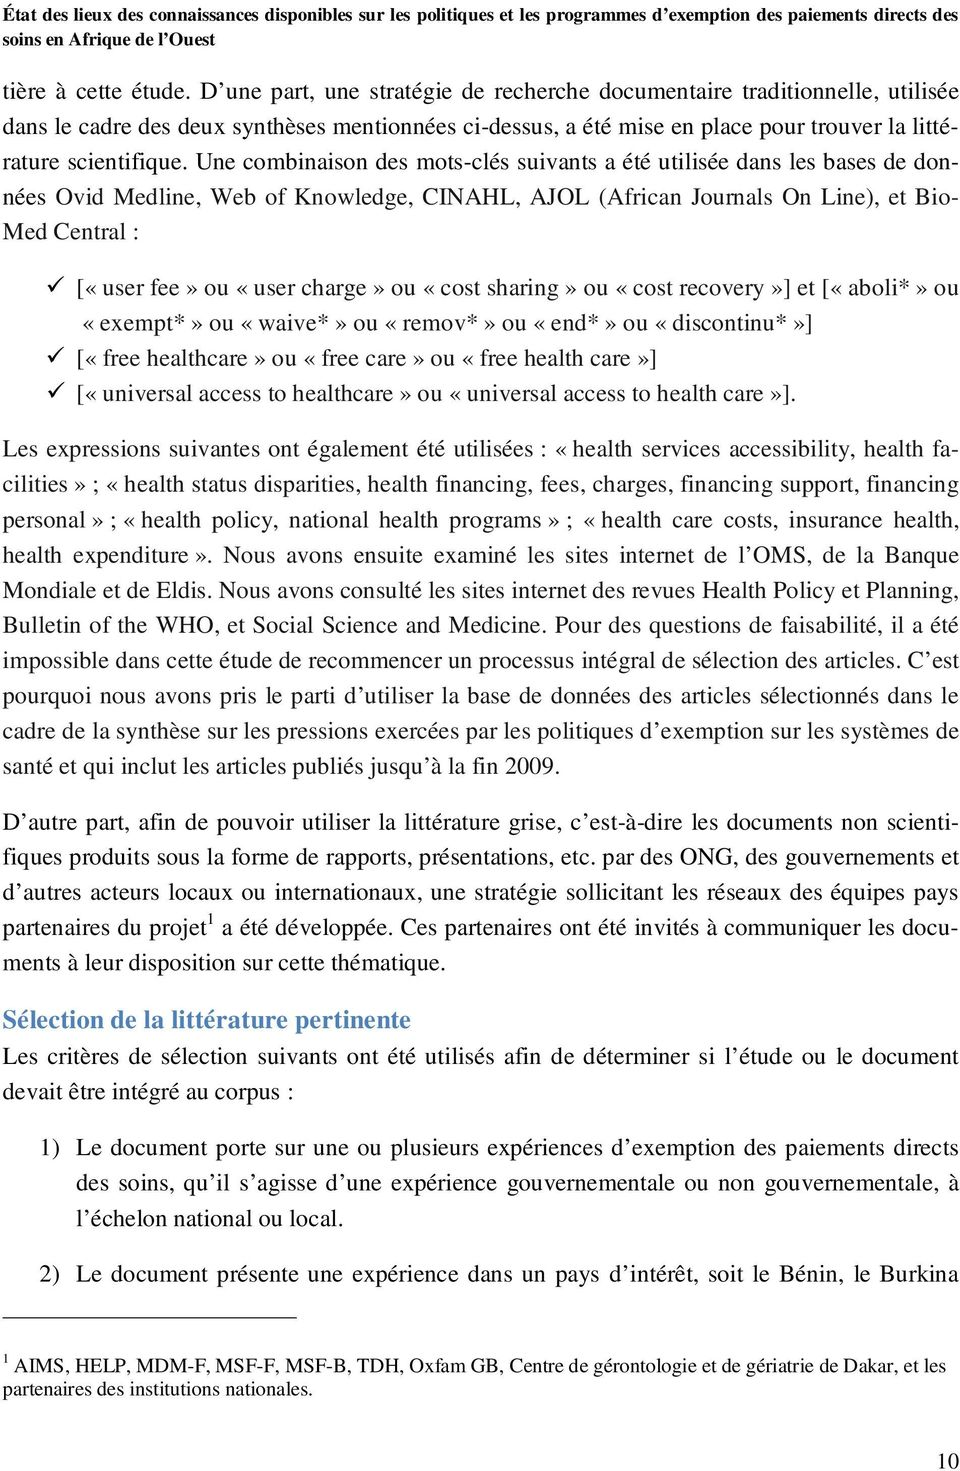 Une combinaison des mots-clés suivants a été utilisée dans les bases de données Ovid Medline, Web of Knowledge, CINAHL, AJOL (African Journals On Line), et Bio- Med Central : [«user fee» ou «user